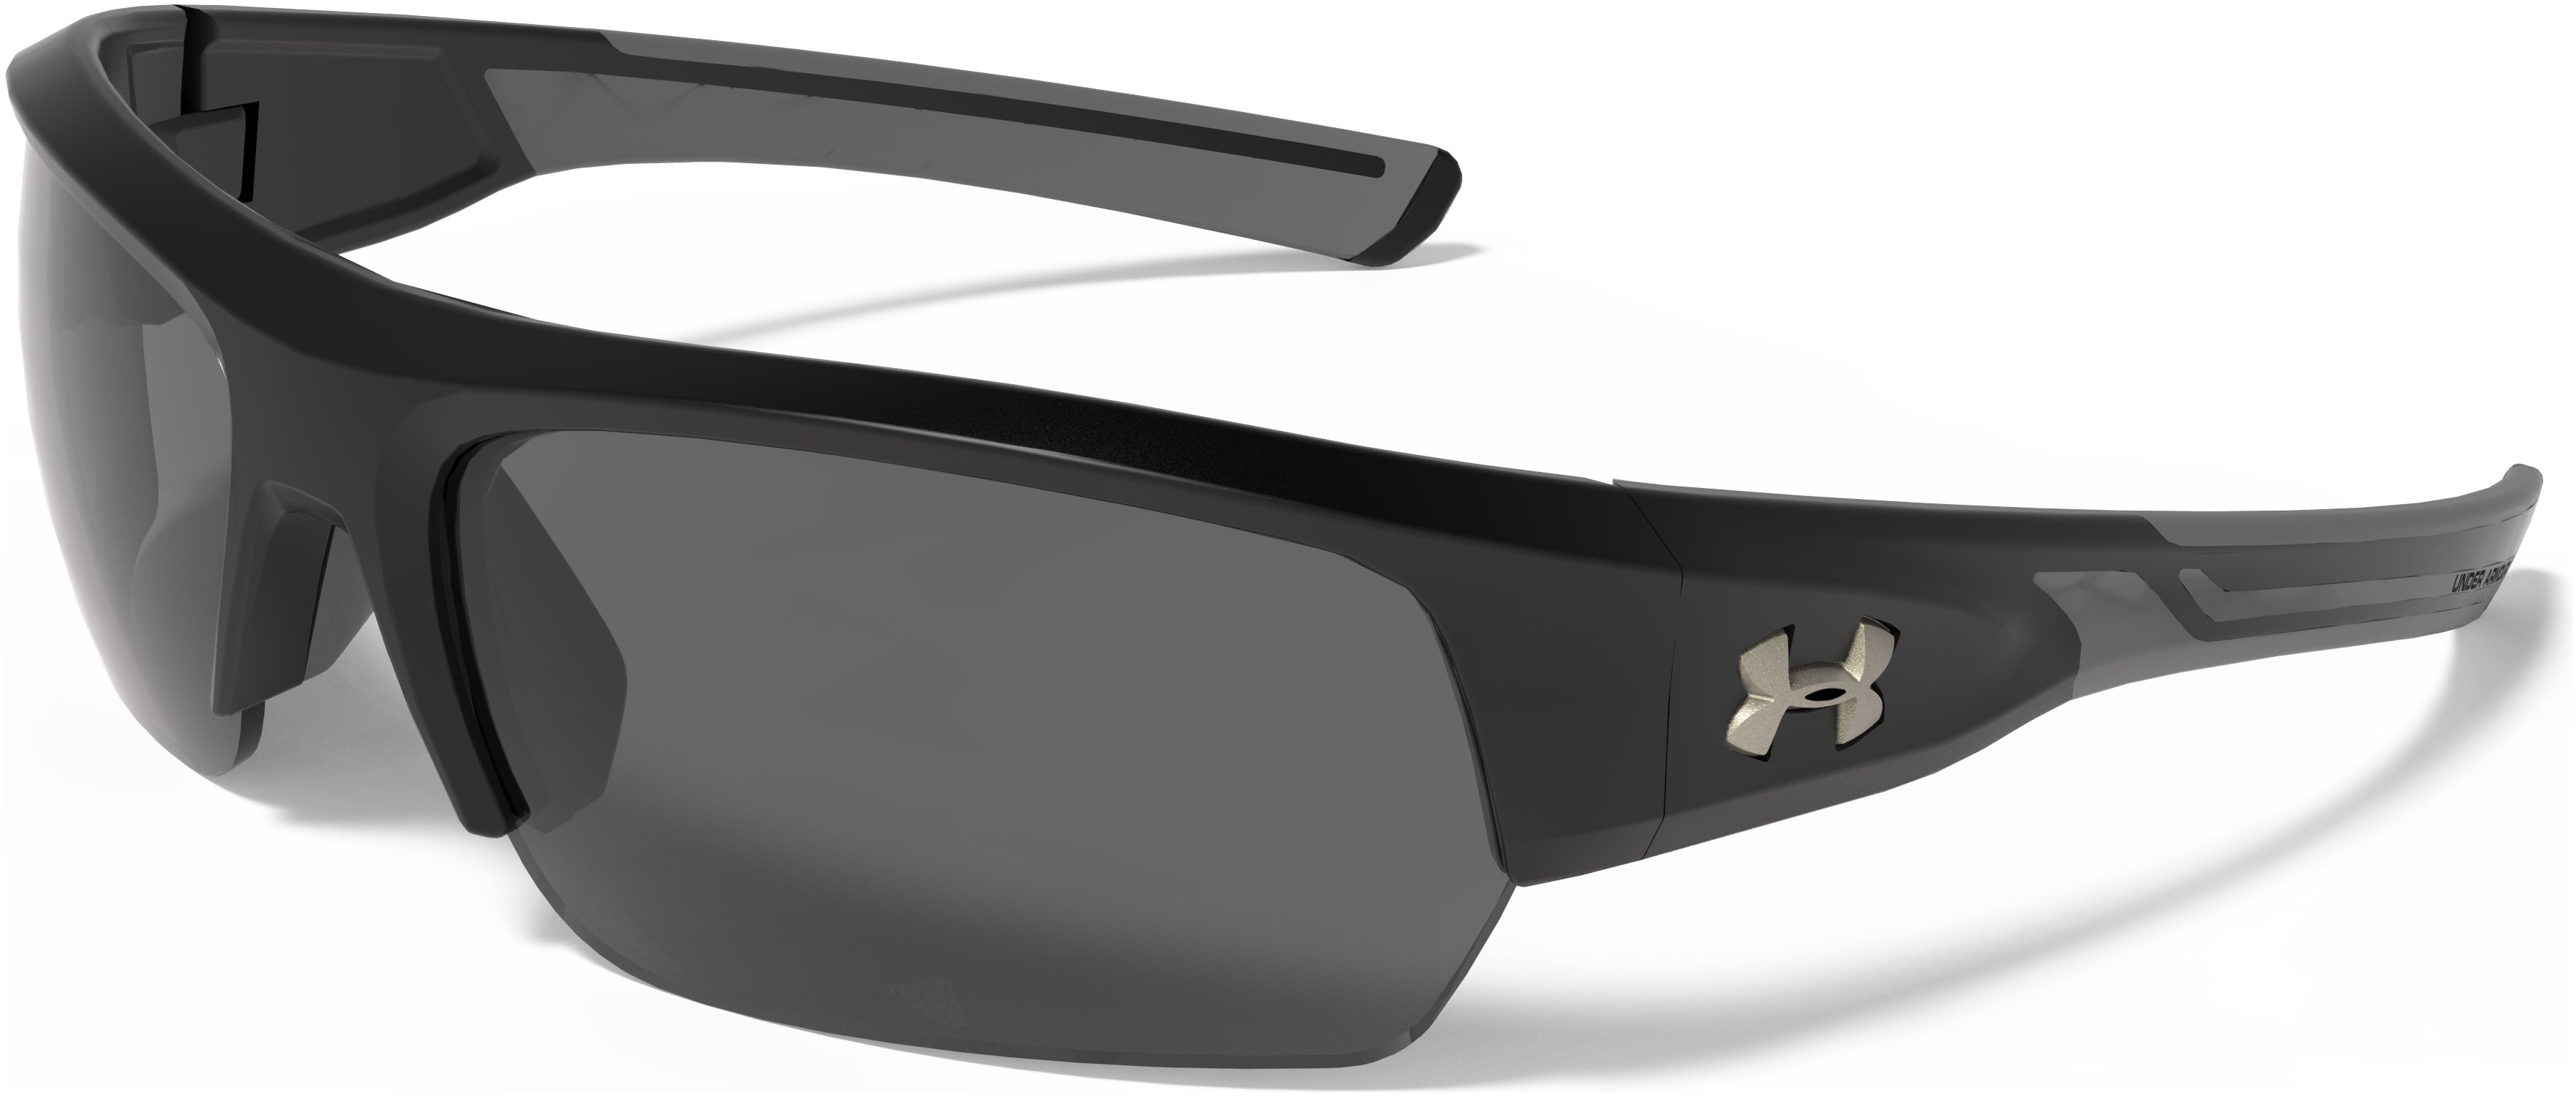 unisex polarized sunglasses UA Big Shot Storm Polarized Sunglasses Good Sunglasses for working....These glasses provide great protection from the sun and are really comfortable....Love how the lenses hide my eyes.